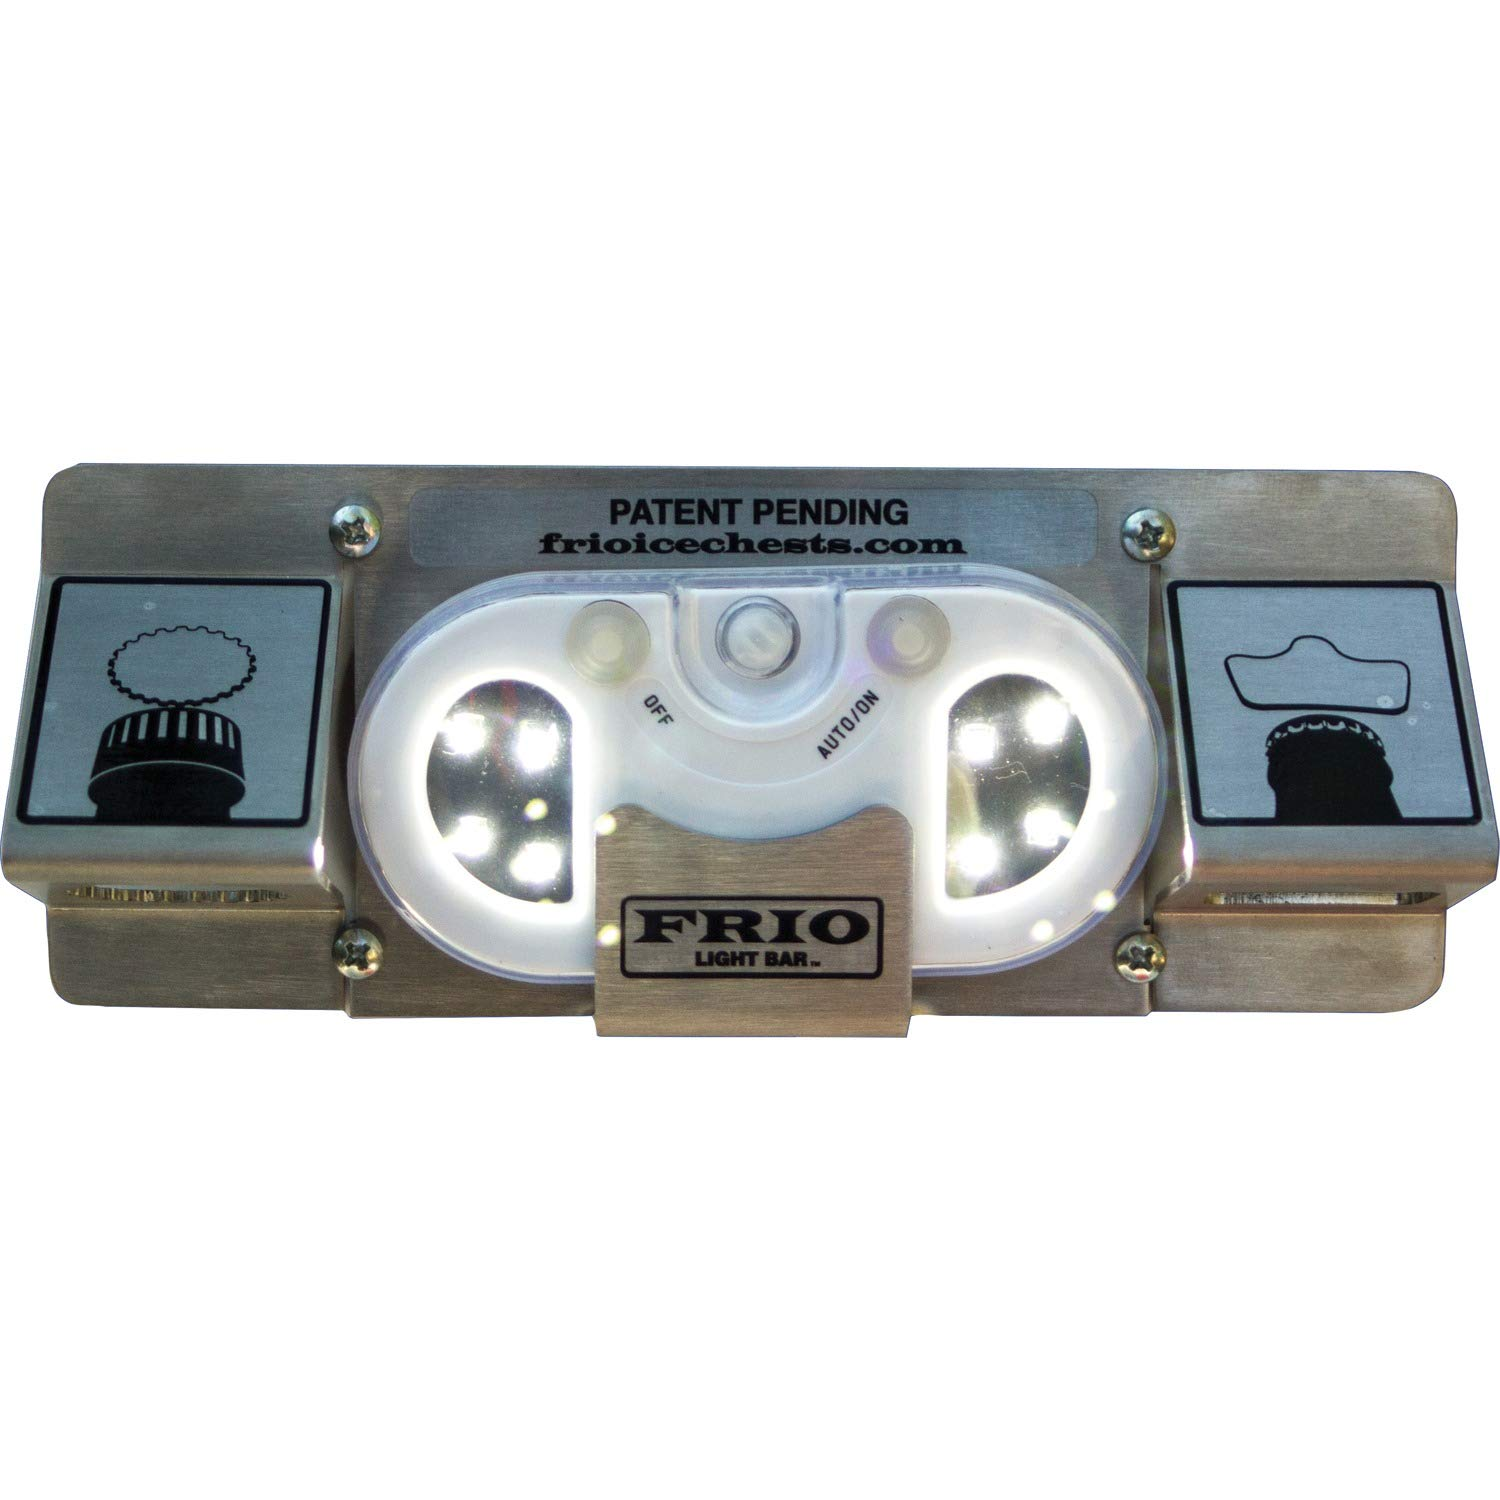 Frio Ice Chests Light Bar with Motion Sensitive Magnetic Light and Standard and Twist Off Bottle Openers, Works Well with Almost Any Coolers by Frio Ice Chests